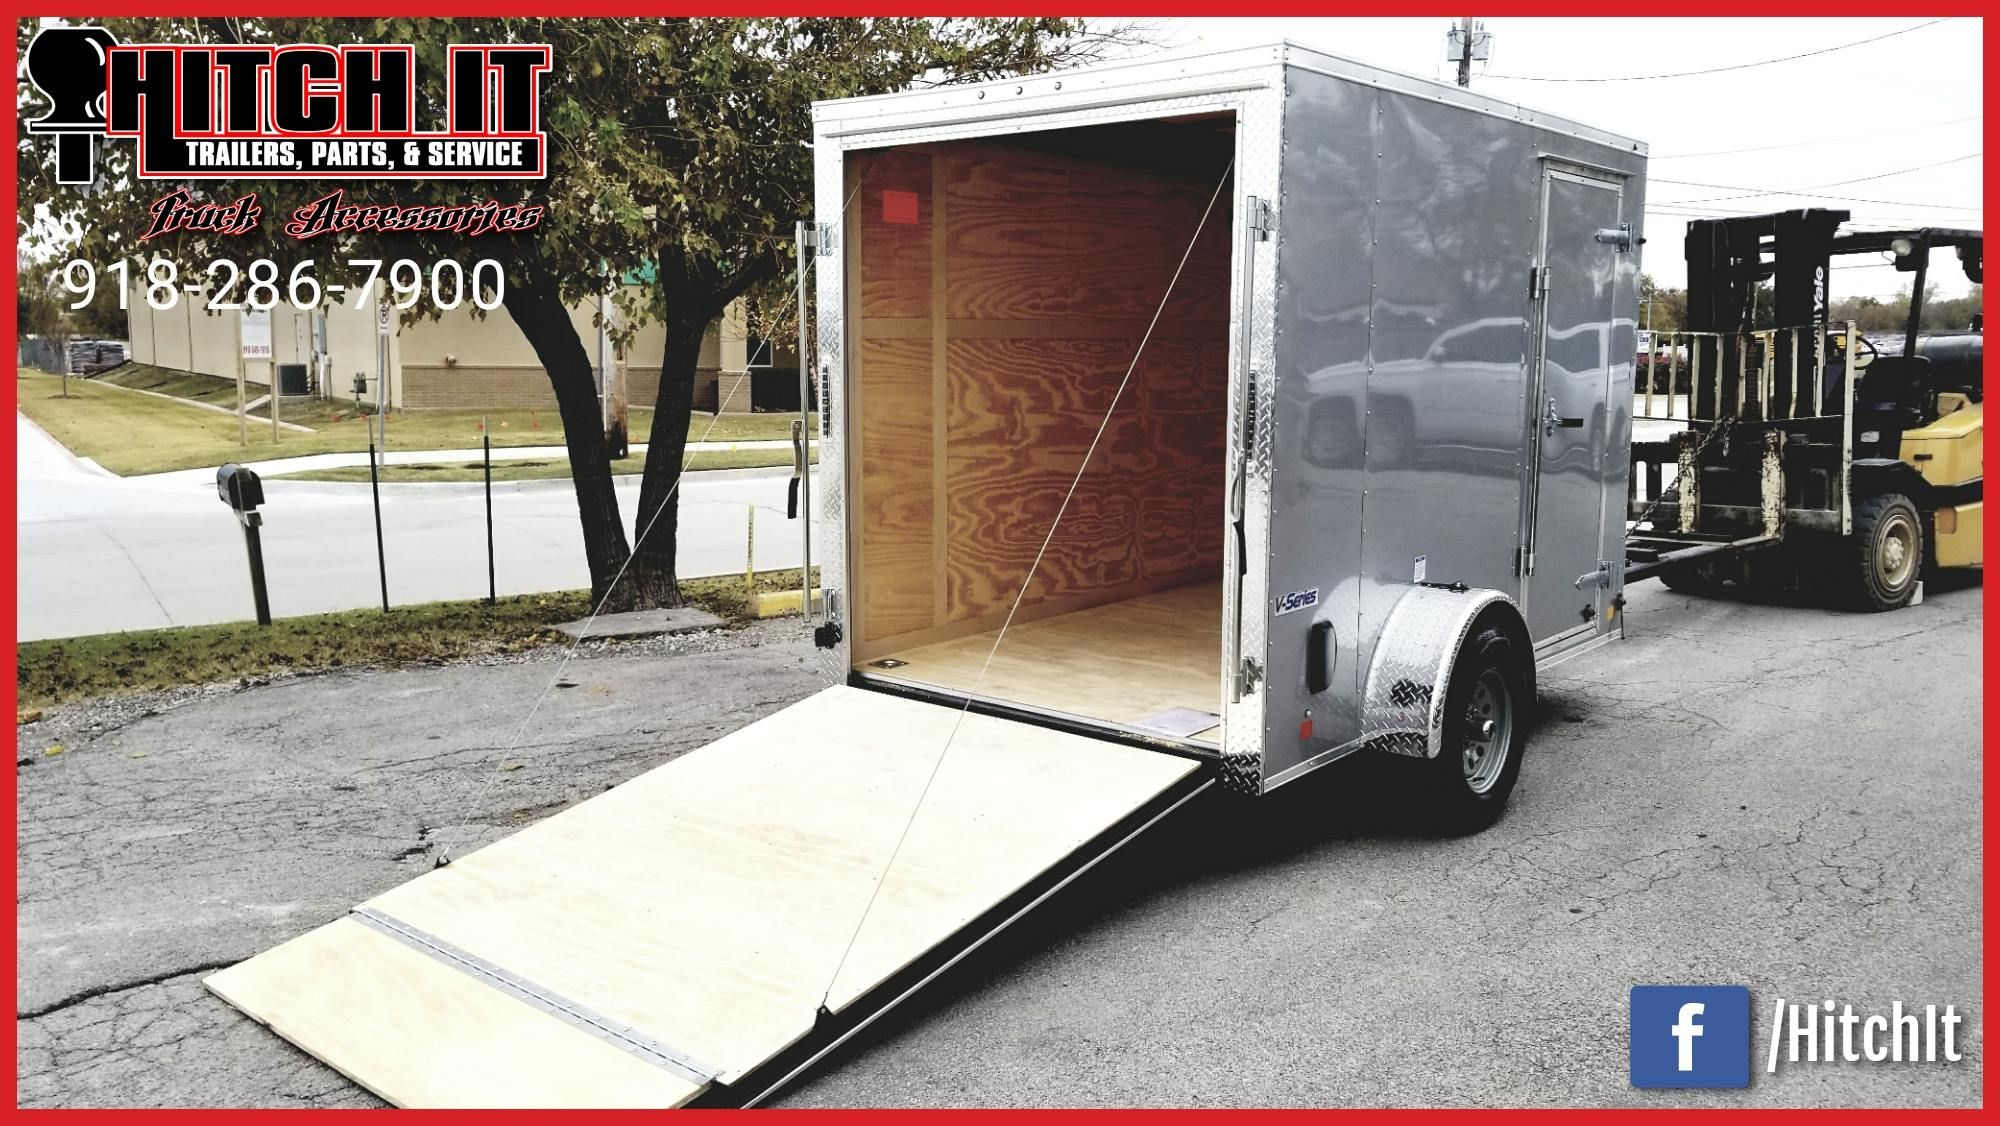 6 X 10 Continental Cargo Hitch It Trailers Sales Parts Service Truck Accessories 5866 S 107th E Enclosed Cargo Trailers Utility Trailer Trailers For Sale